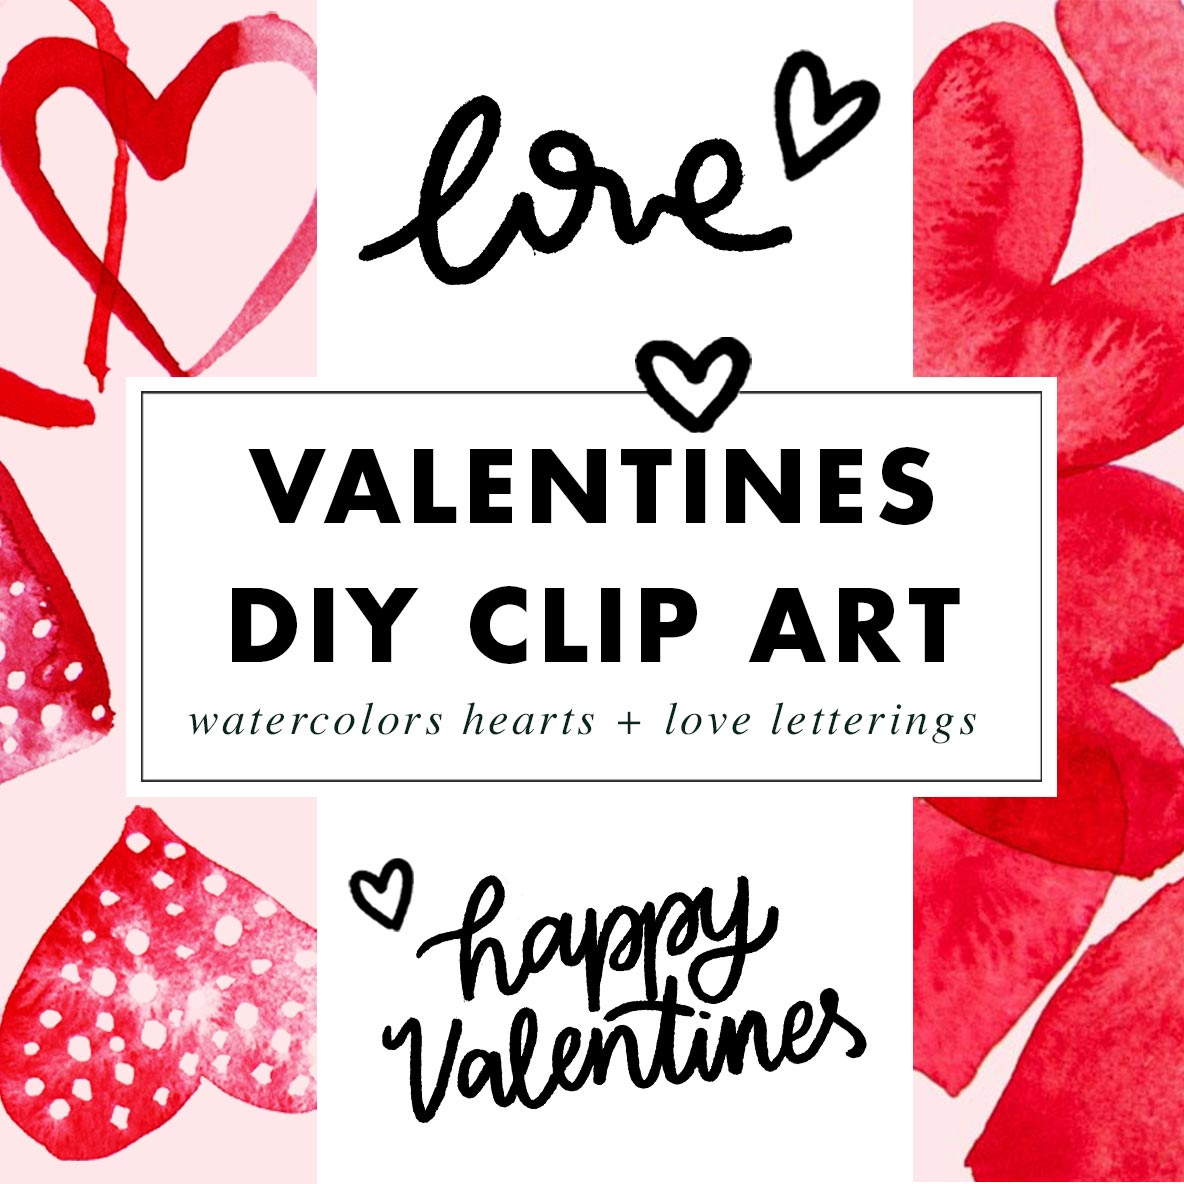 Valentines Day Promo Images to DIY - Watercolor & Lettering Clip Arts by Heartmade